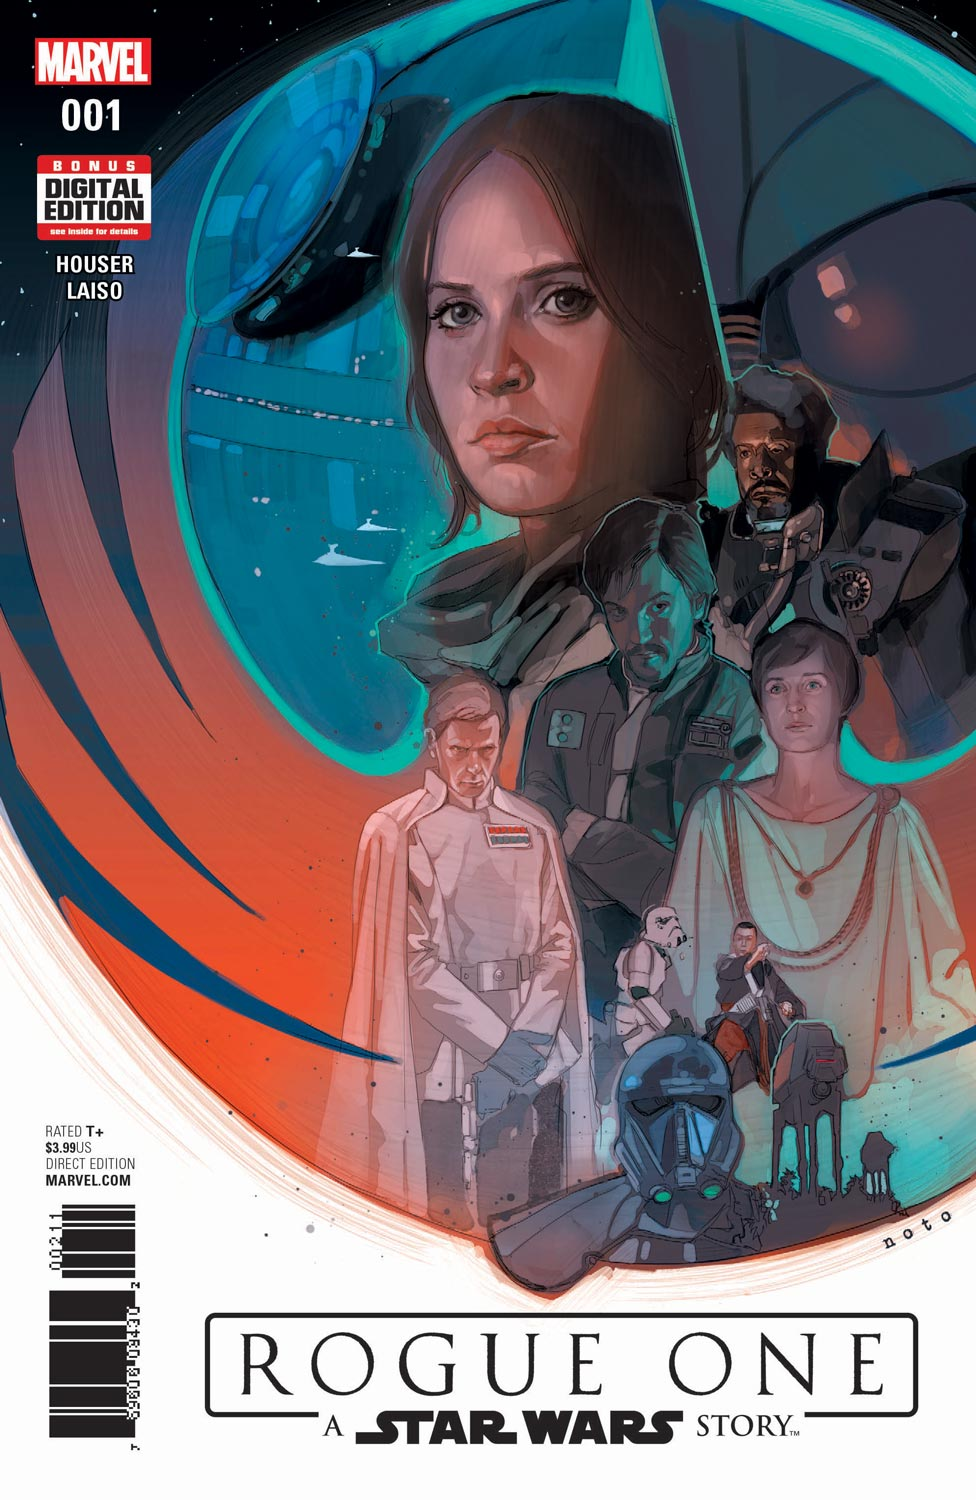 ROGUE ONE: A STAR WARS STORY Comes to Marvel Comics This April